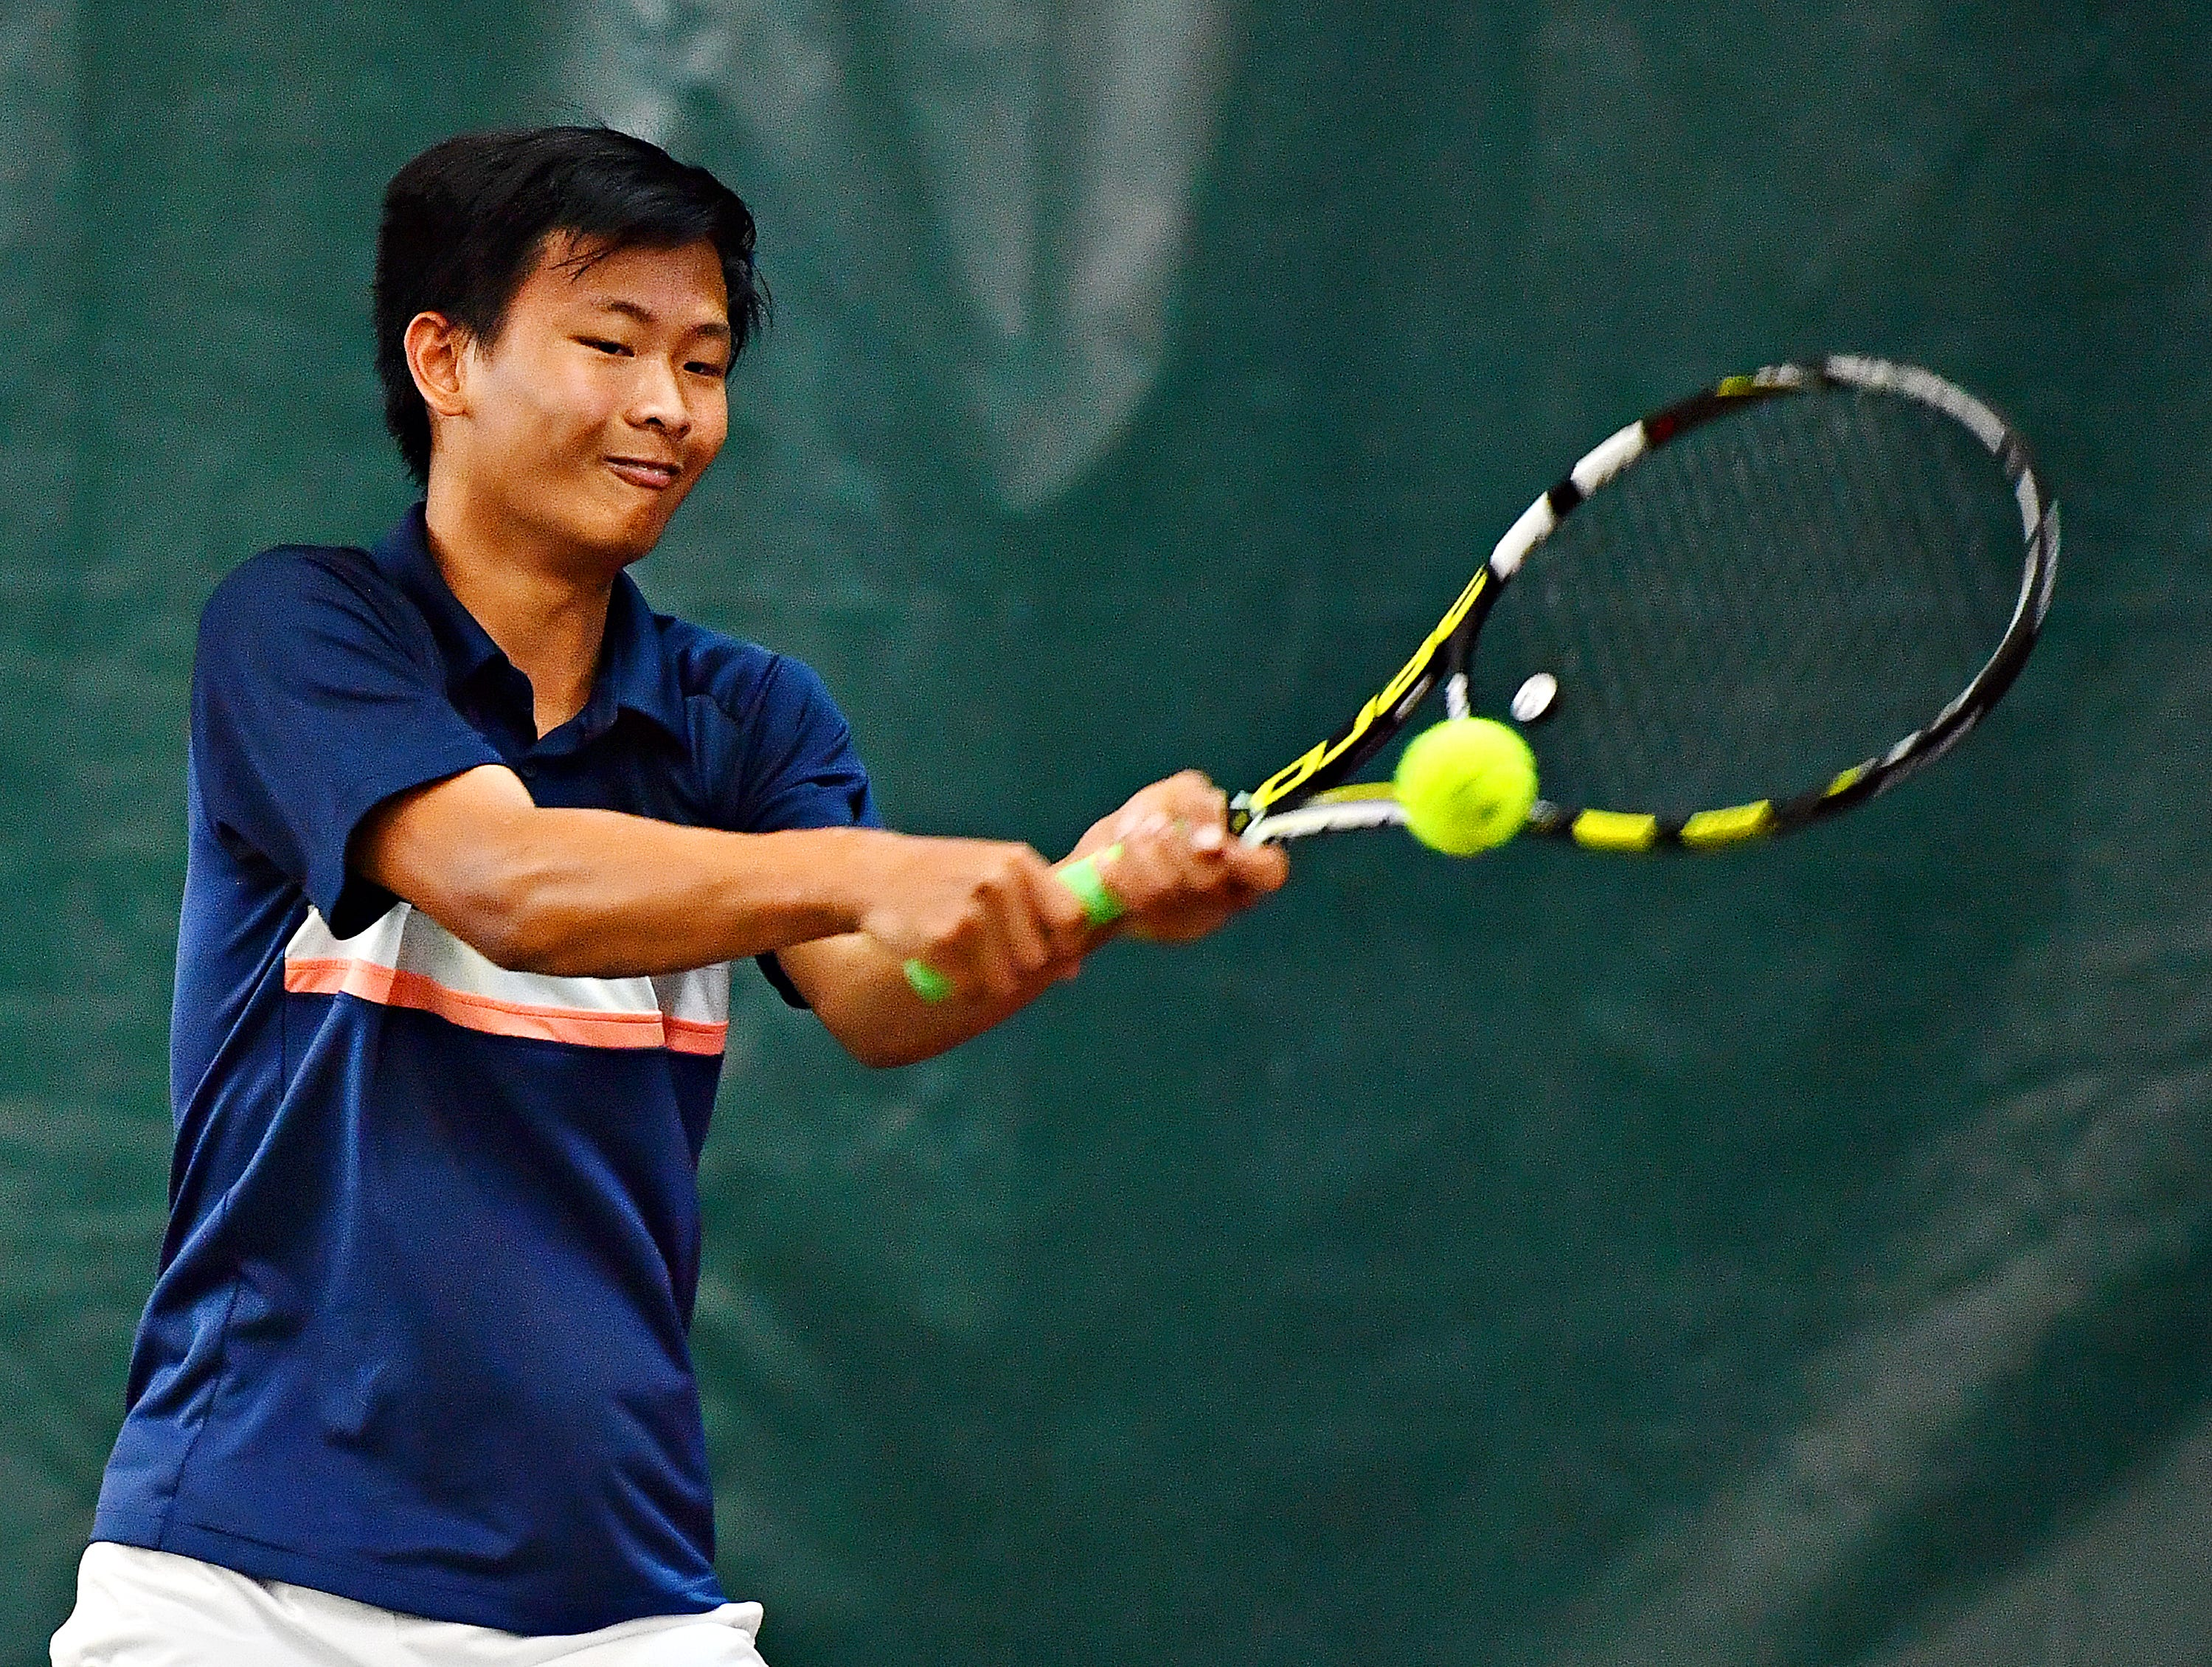 Hershey's Andy Chen returns the ball to Dallastown's Jonathan Burns during District III, Class 3-A boys' tennis team championship action at Hershey Raquet Club in Hershey, Thursday, May 9, 2019. Chen would win the match and Hershey would win the title. Dawn J. Sagert photo